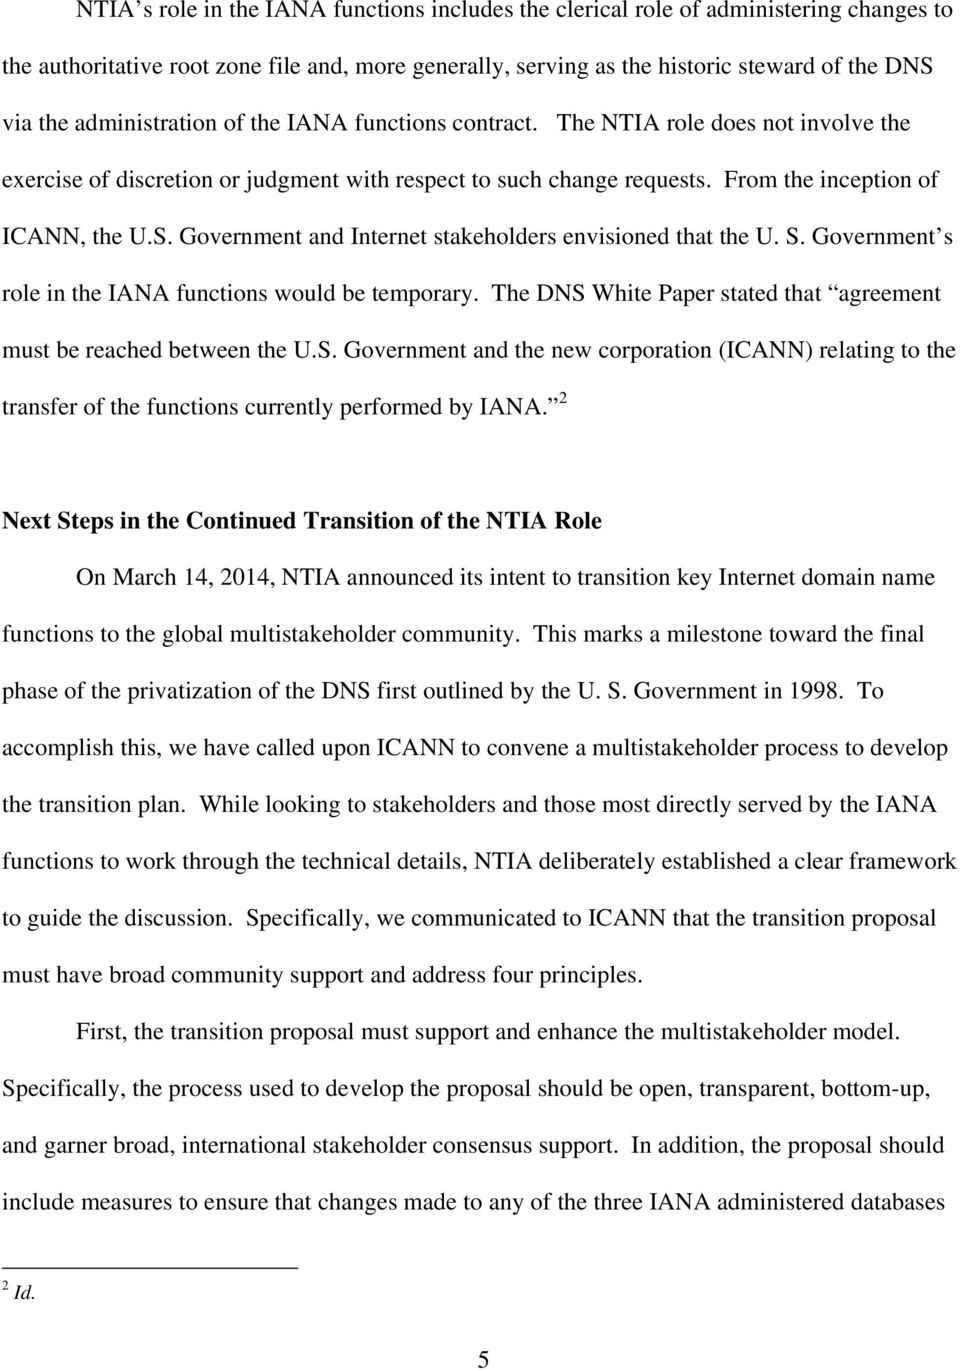 Government and Internet stakeholders envisioned that the U. S. Government s role in the IANA functions would be temporary. The DNS White Paper stated that agreement must be reached between the U.S. Government and the new corporation (ICANN) relating to the transfer of the functions currently performed by IANA.